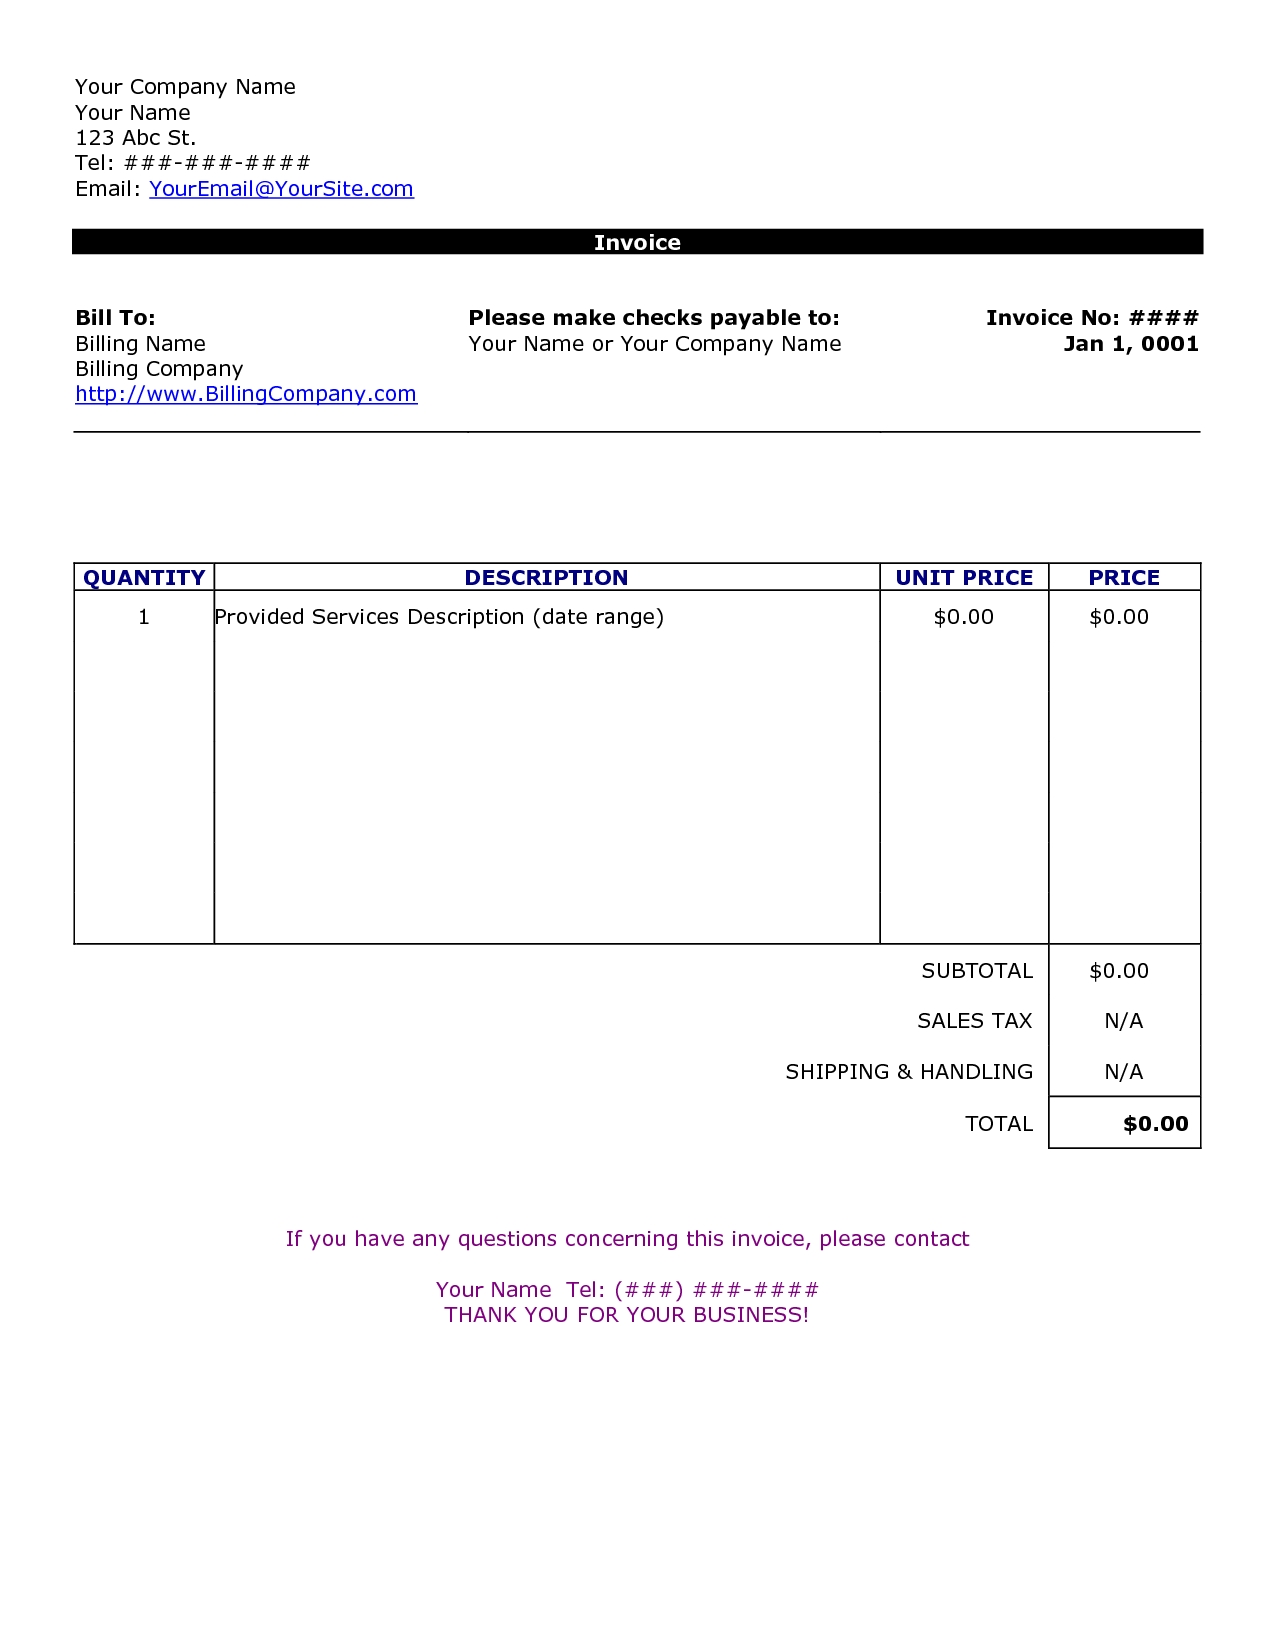 Contemporary Sponsorship Invoice Template Festooning - FORTSETZUNG ...